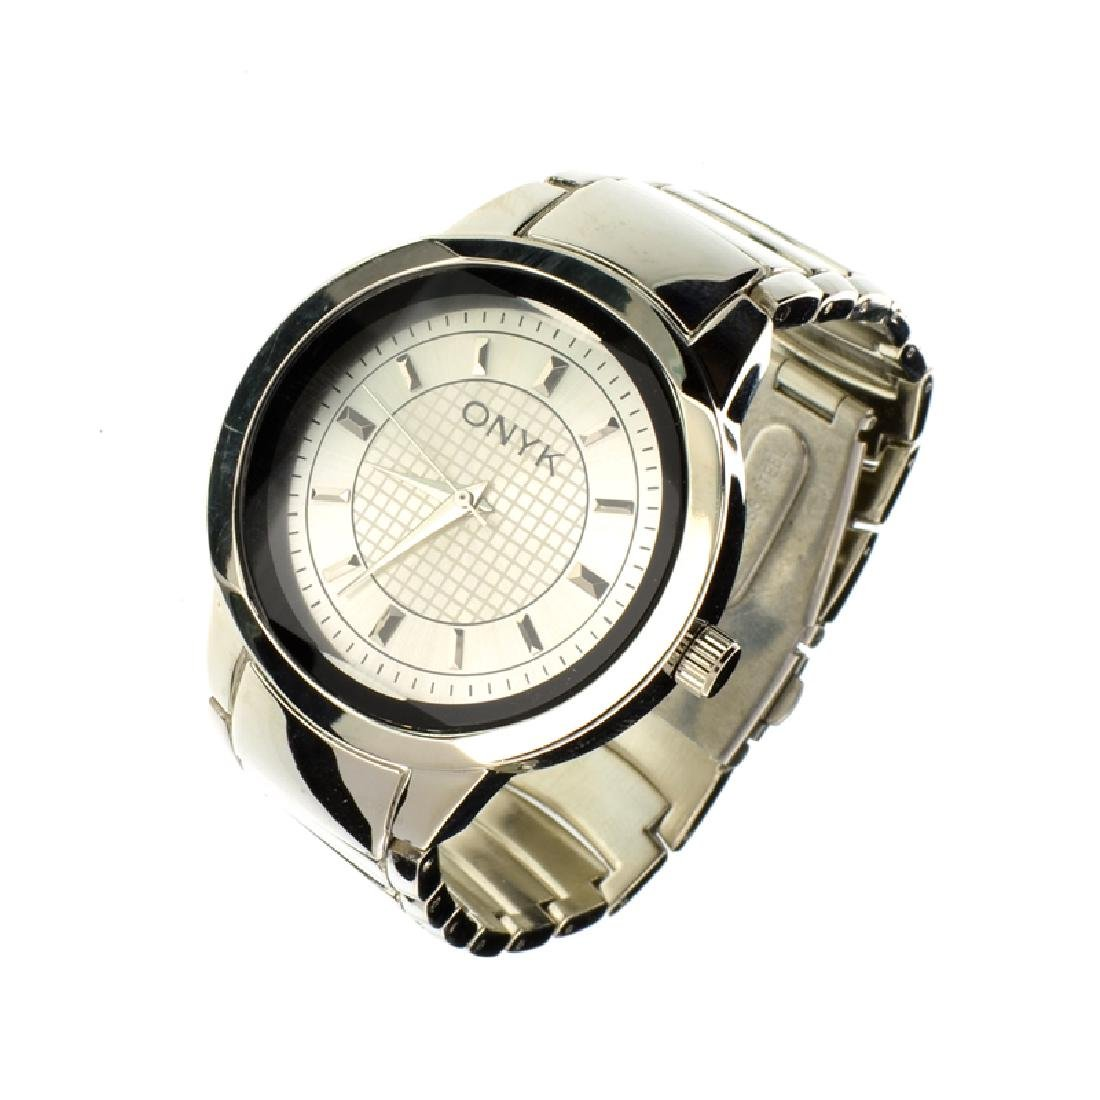 New Men's Onyk Stainless Steel Back Water Resistant